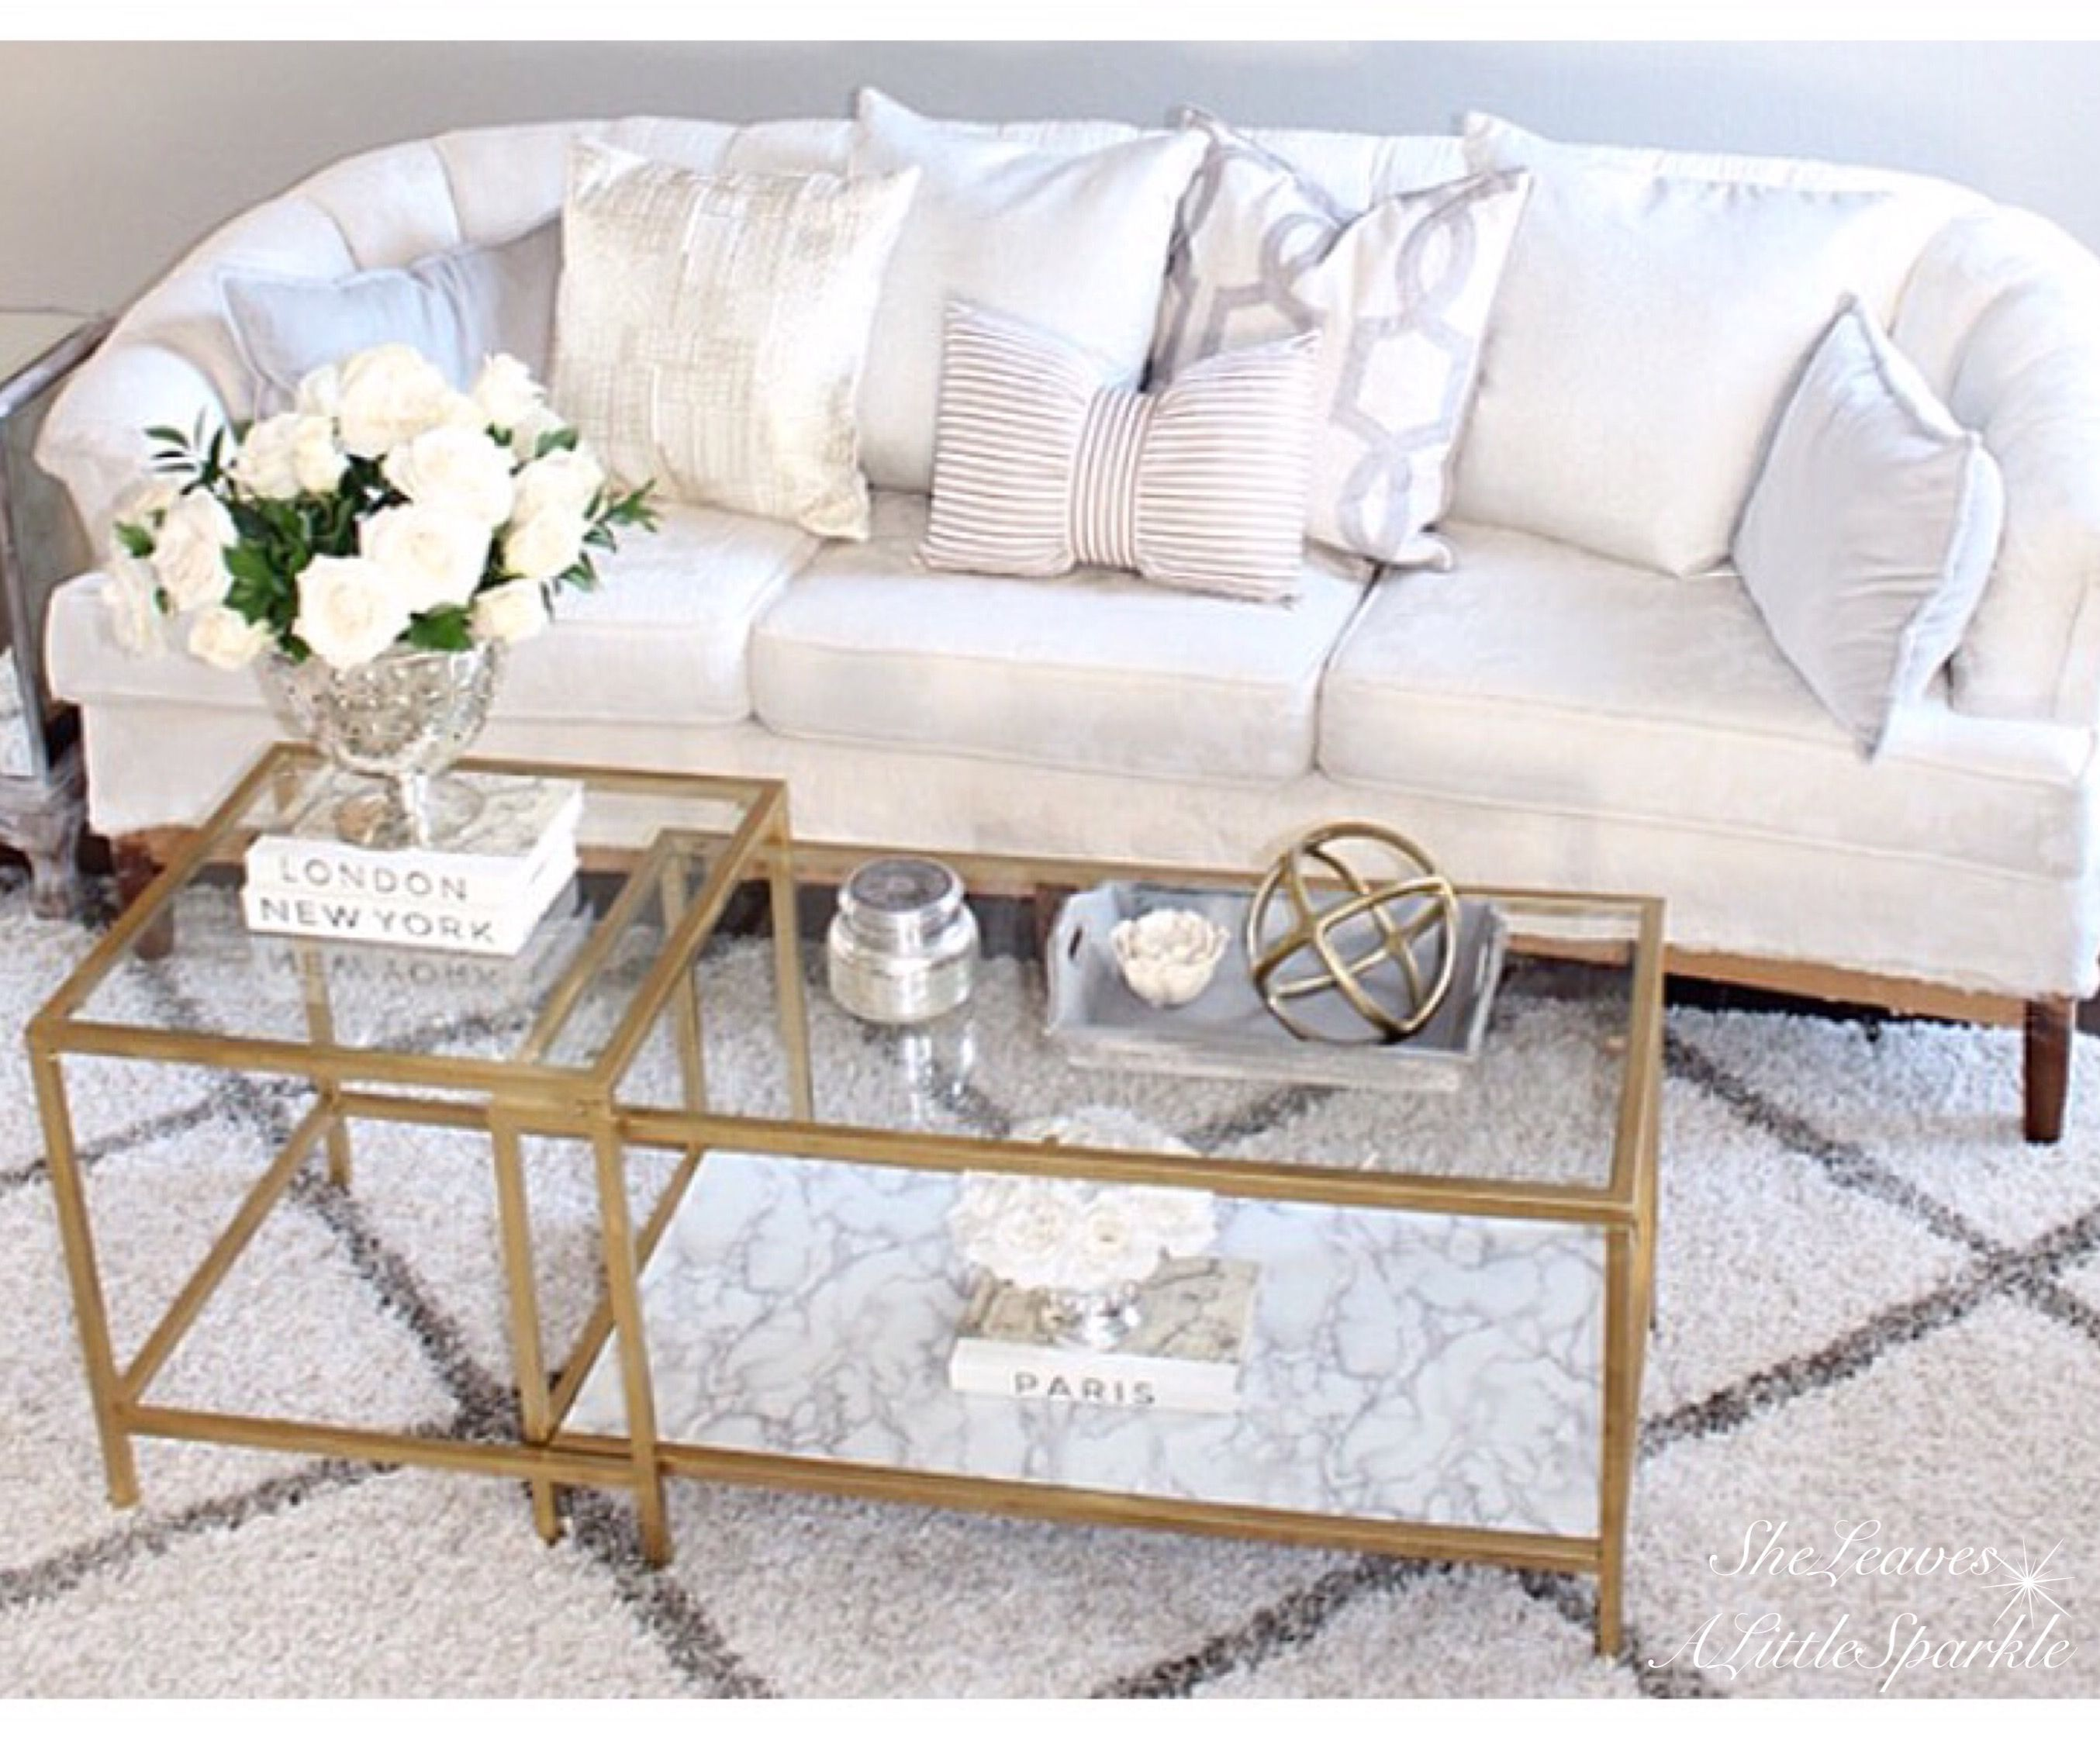 ikea coffee table images # 48